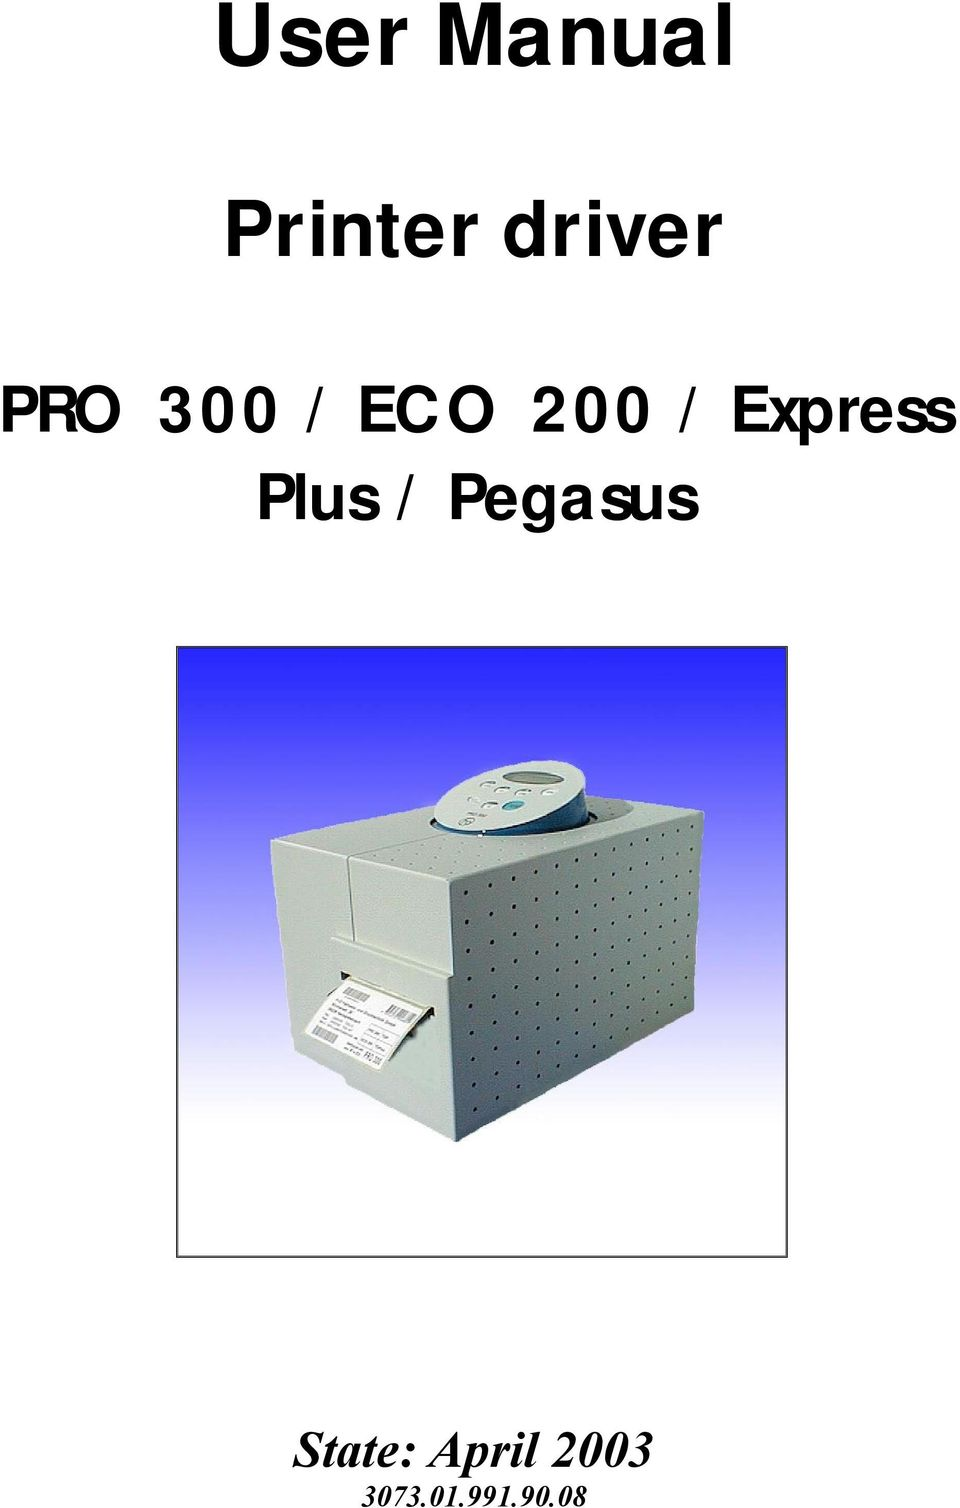 Express Plus / Pegasus